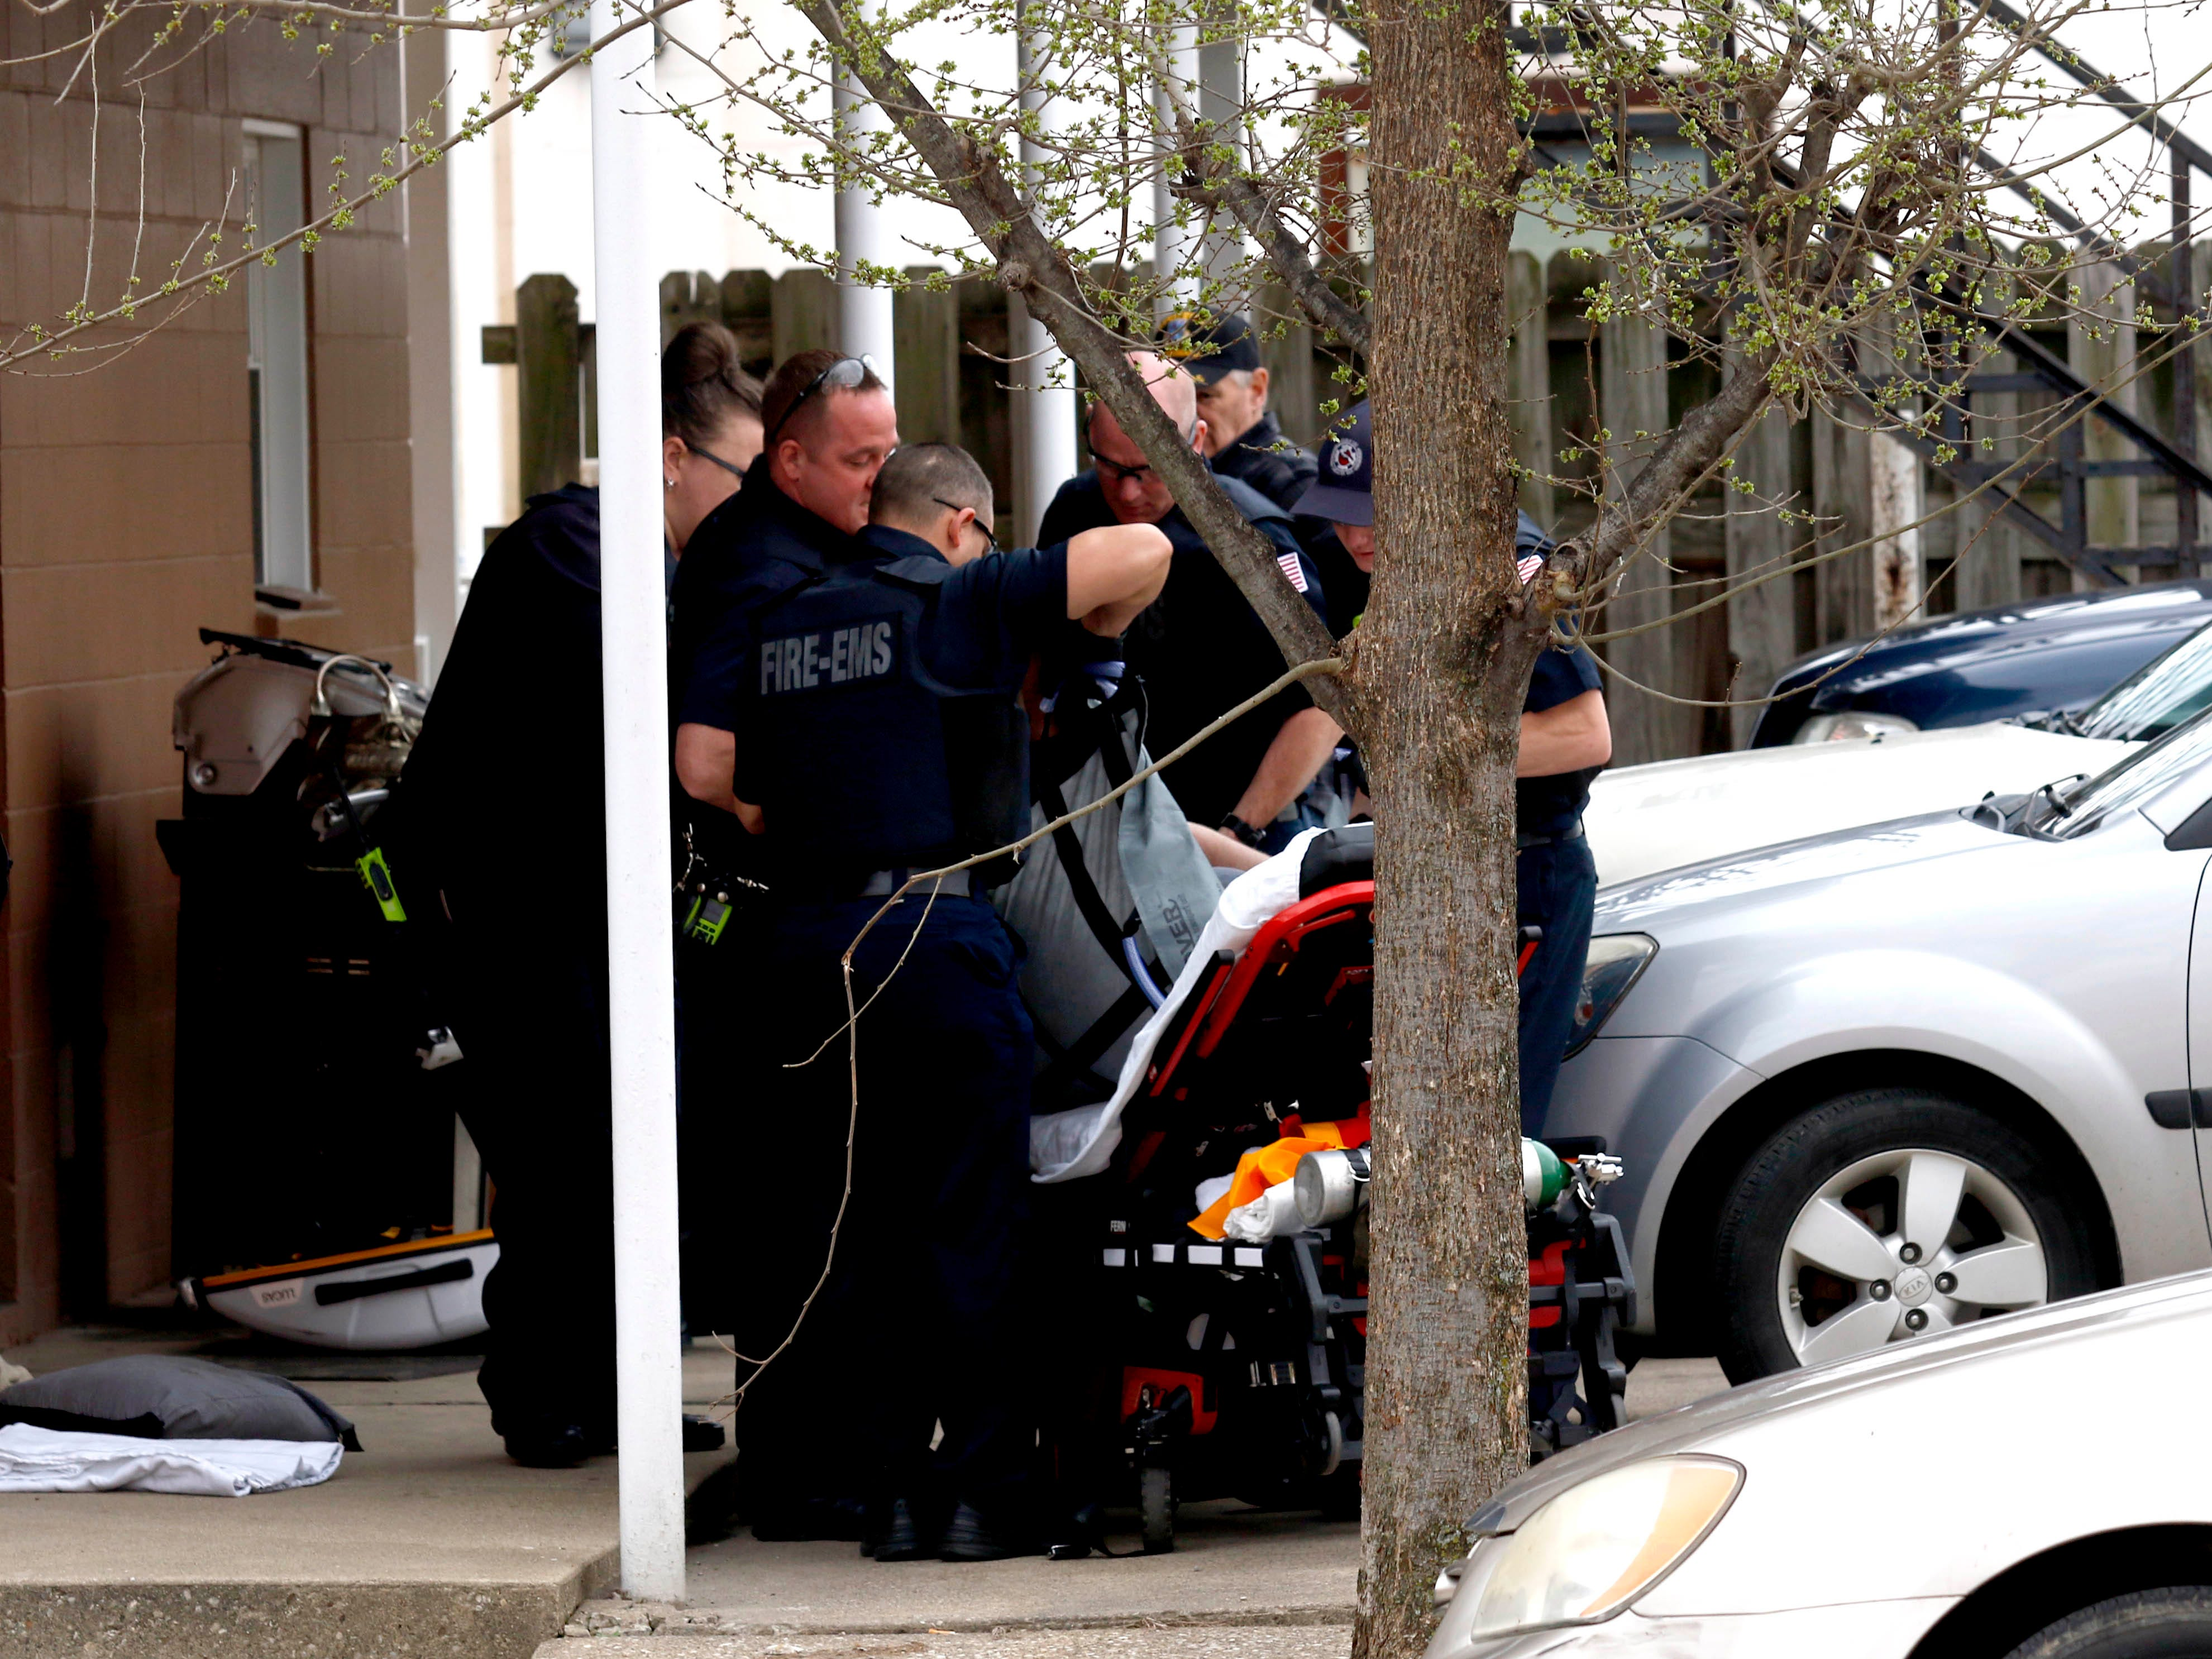 Lancaster fire fighters place a man on a stretcher Monday morning, April 8, 2019, in front of an apartment building at 112 W. Walnut Street in downtown Lancaster. One man died in the stabbing.